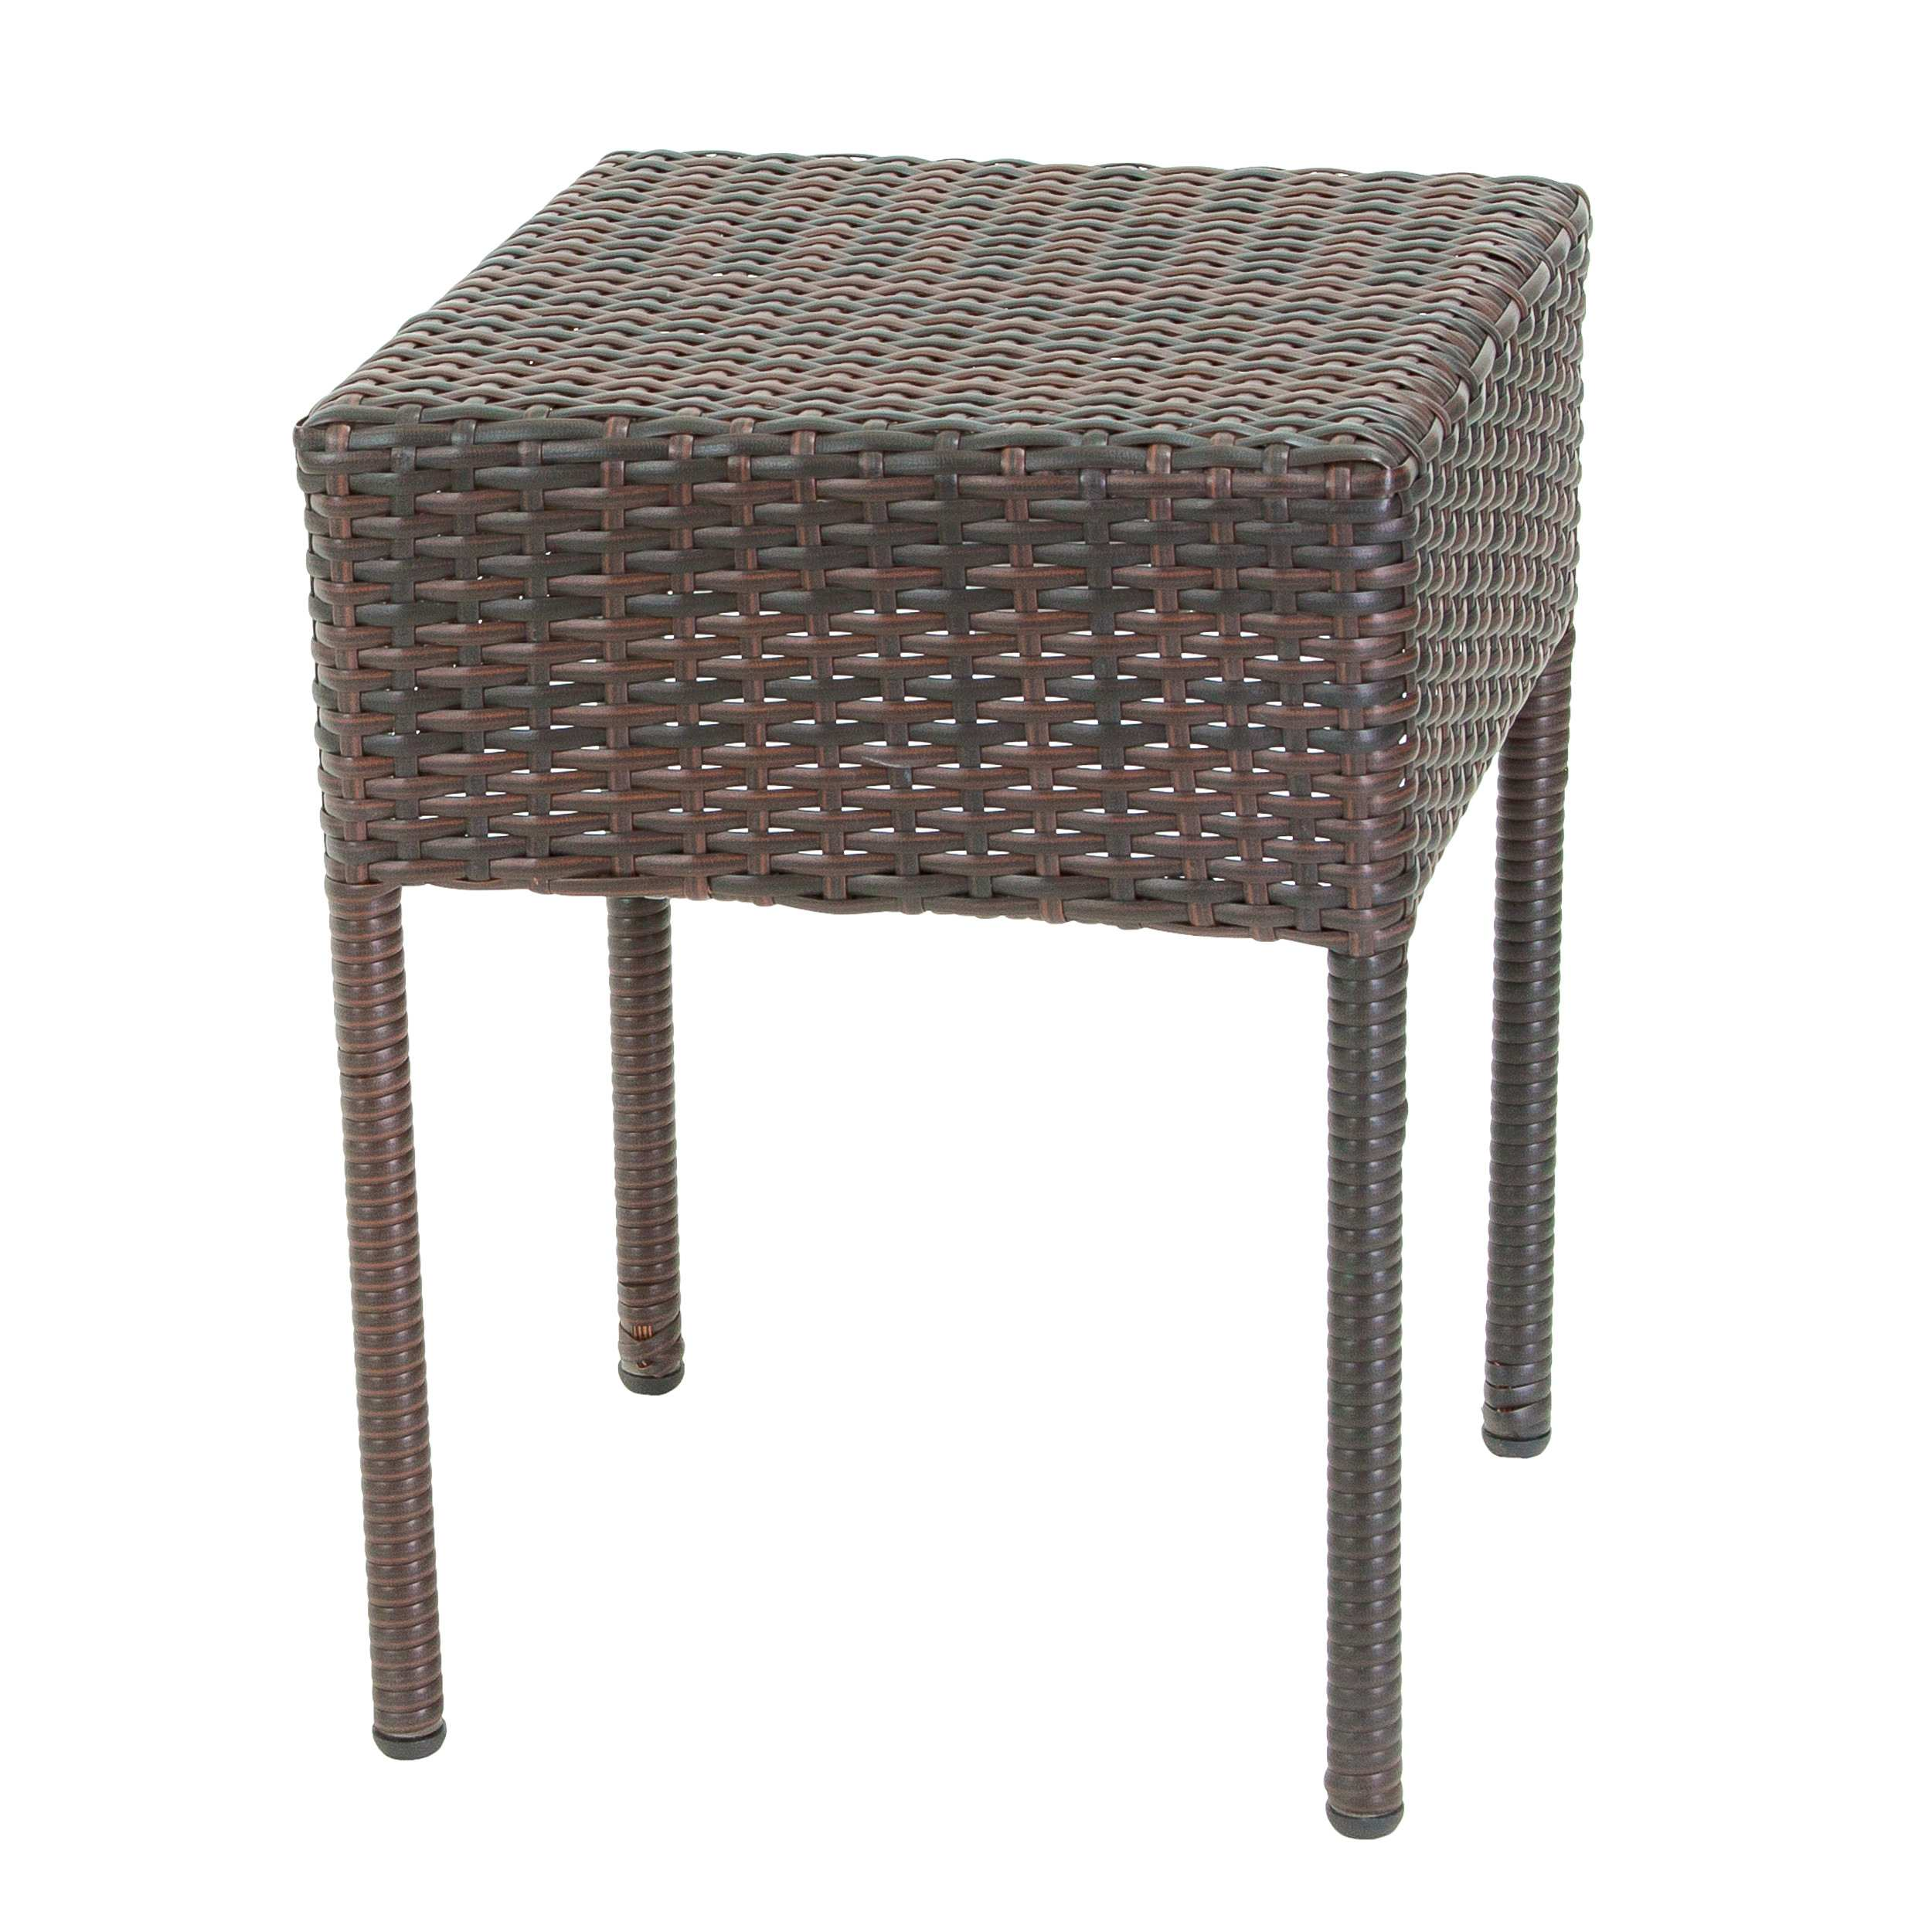 luxury gallery inspirations about threshold wicker patio storage beautiful accent table from hton bay woodbury bar height bistro set round and chairs white outdoor furniture big